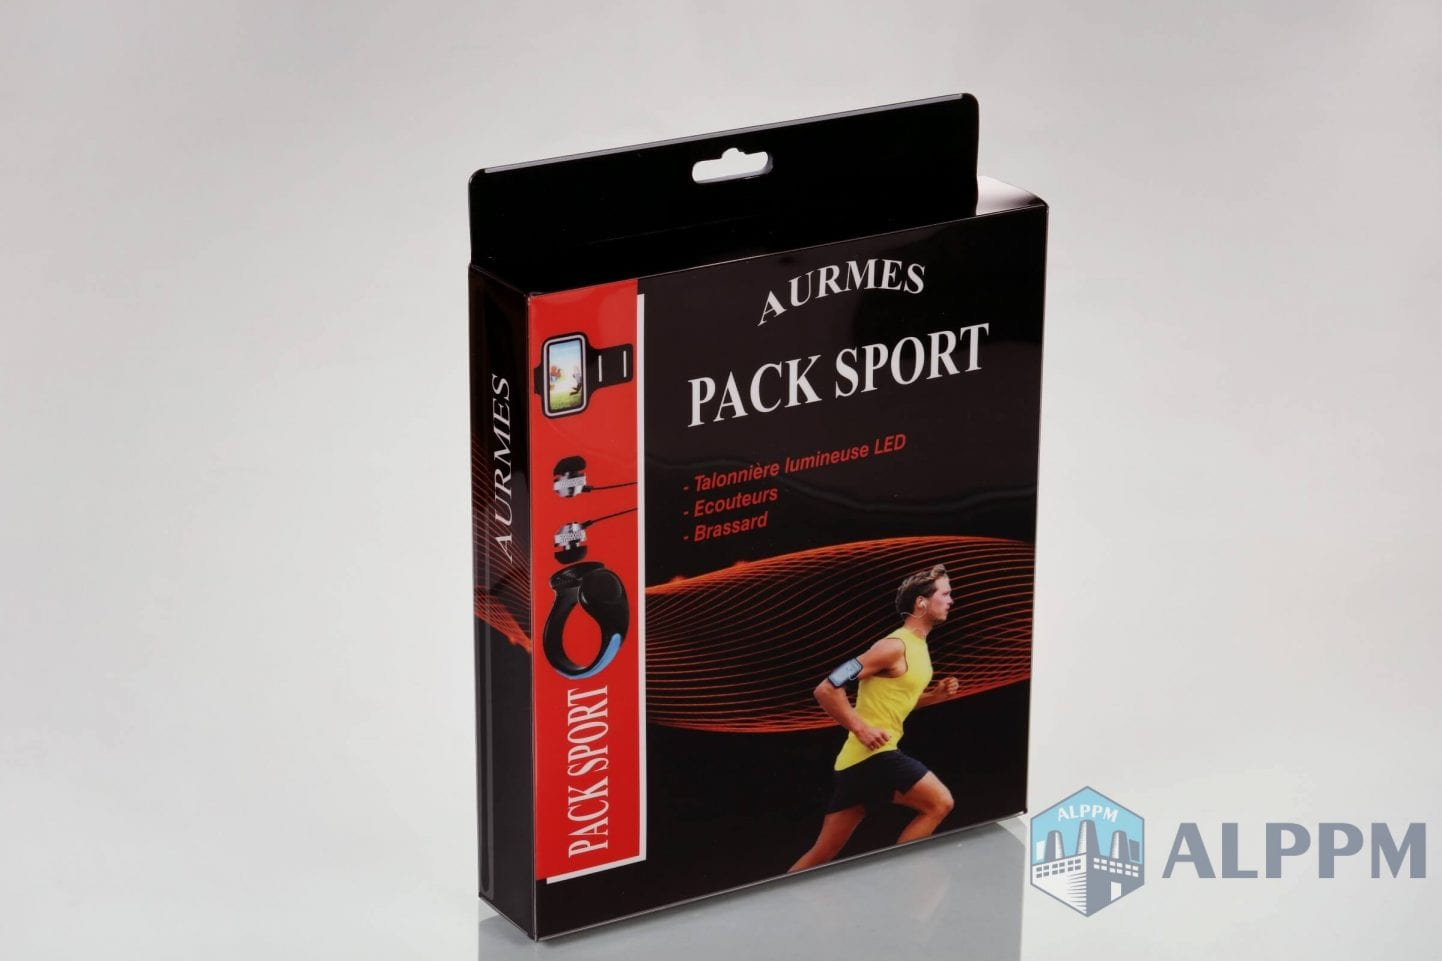 Aurmes pack sports fitness clear packaging boxes